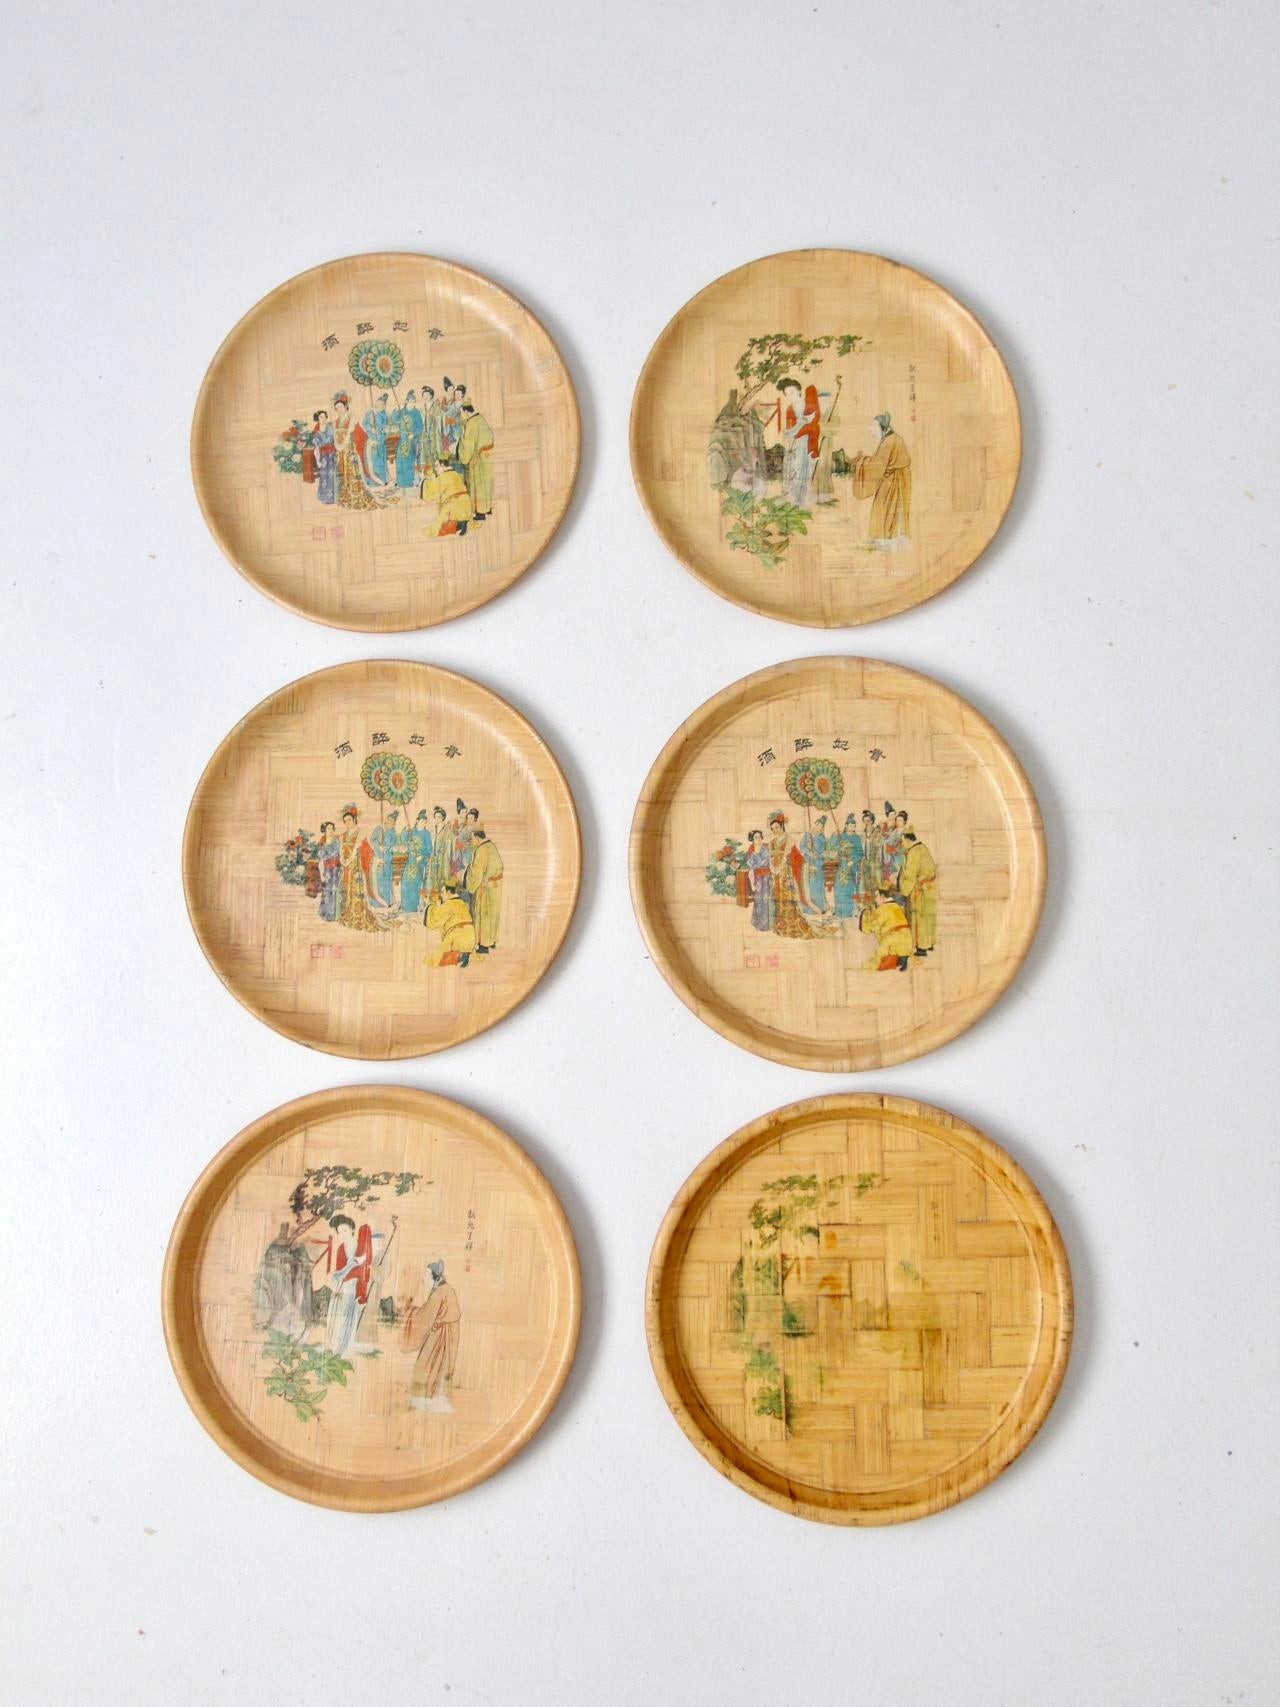 Vintage Chinese Bamboo Painted Plates - Set of 6 - Image 10 of 10  sc 1 st  Chairish & Vintage Chinese Bamboo Painted Plates - Set of 6 | Chairish